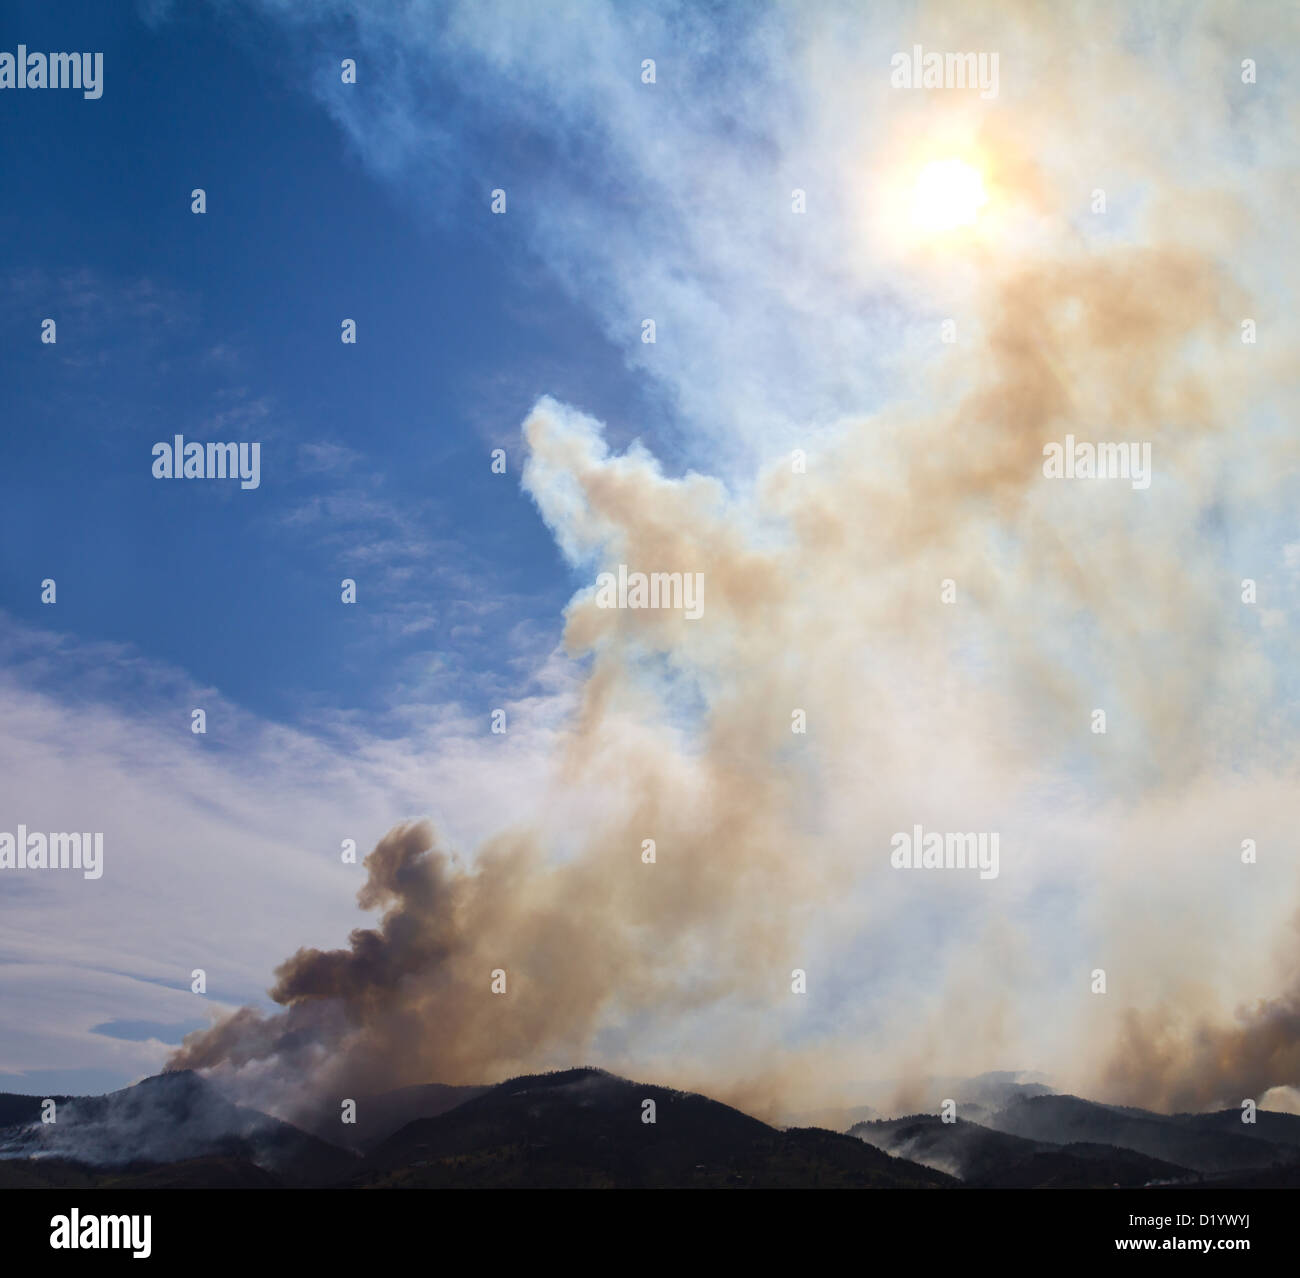 Wildfire smoke rises from burning mountains in Colorado - Stock Image